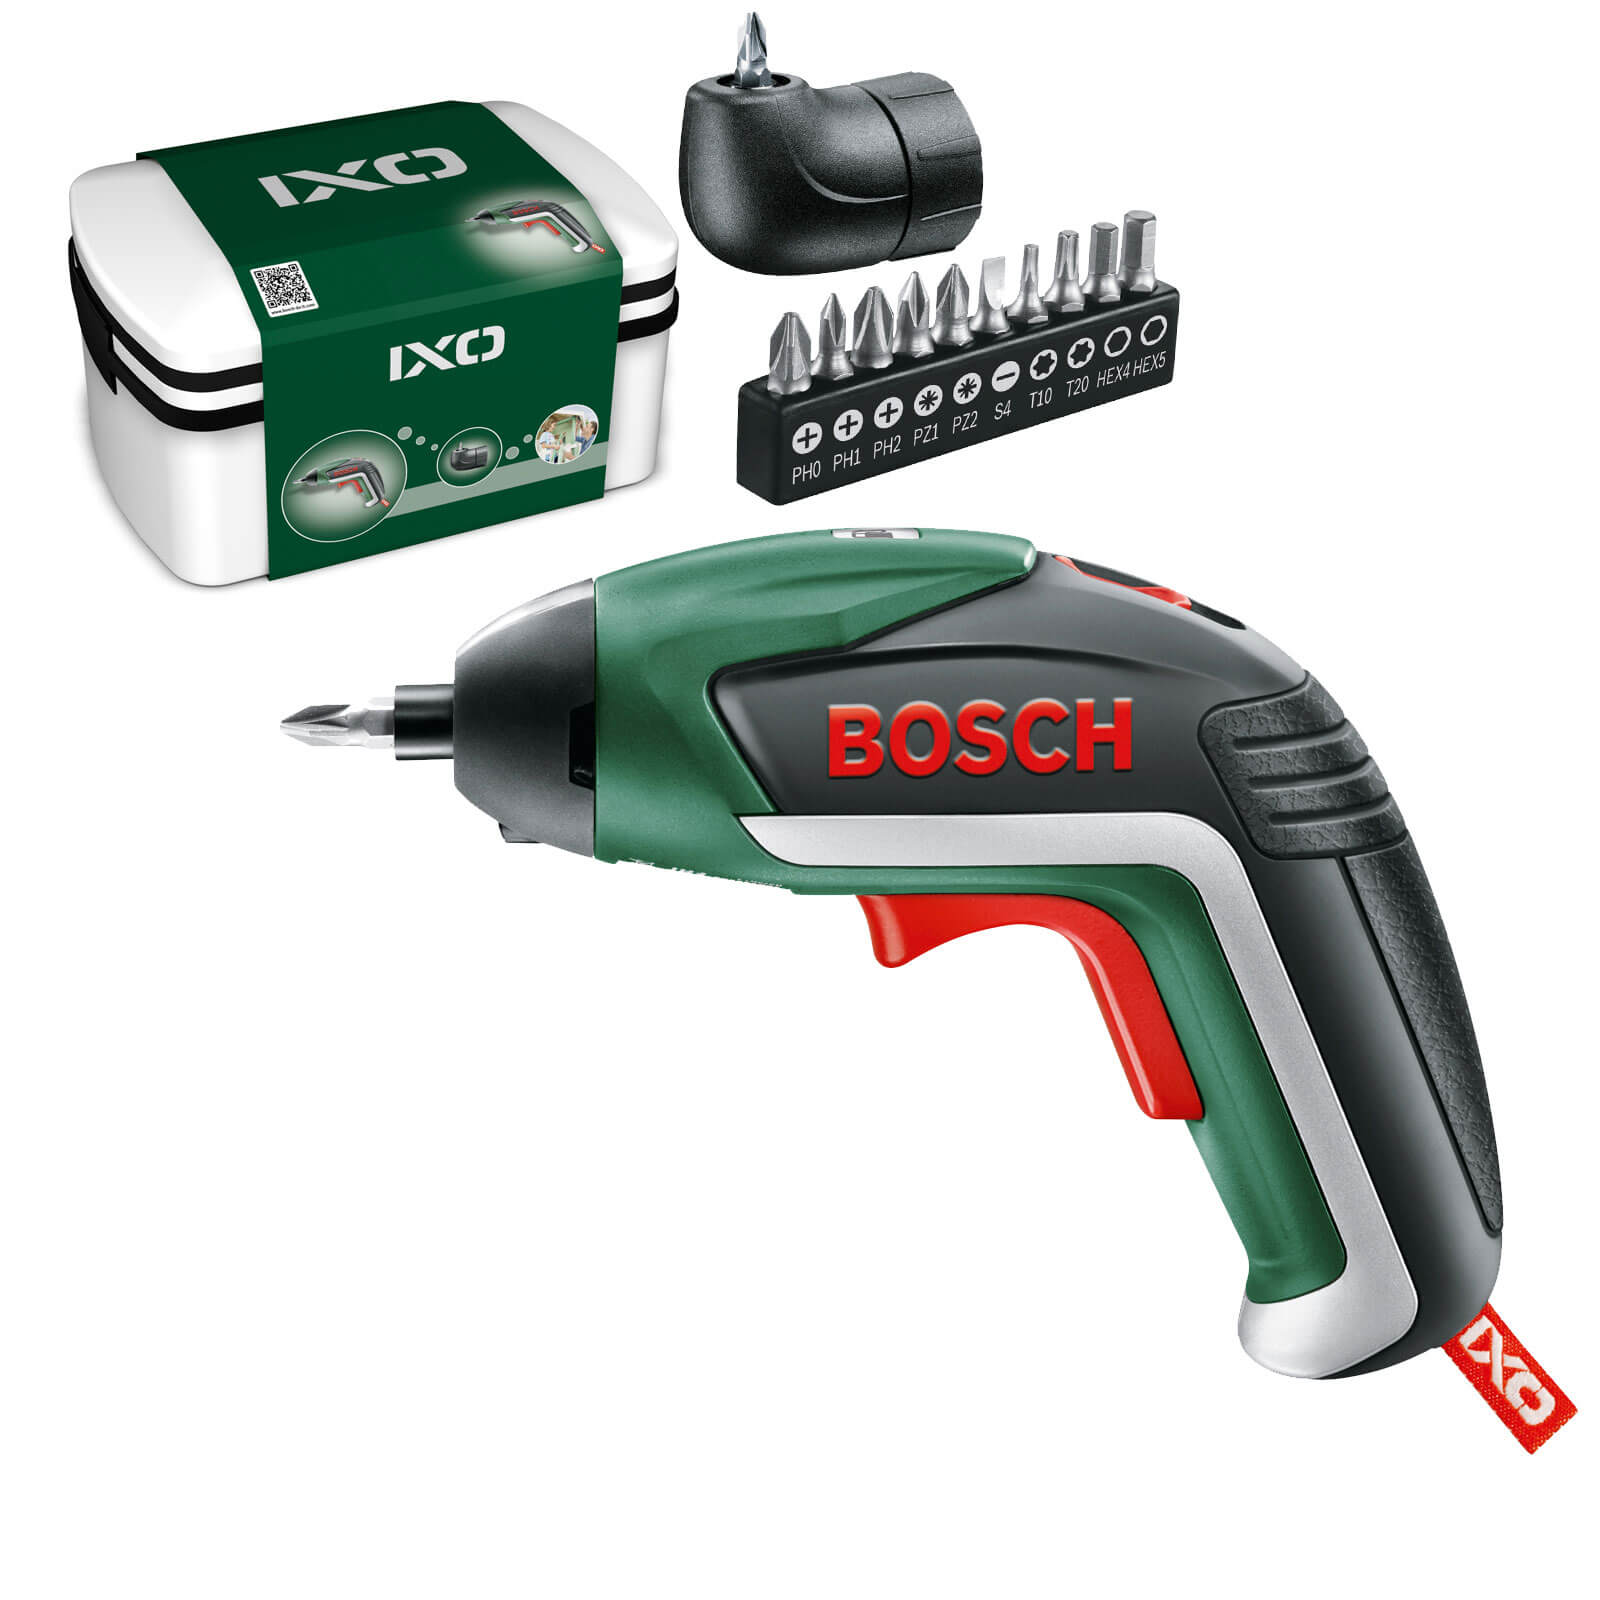 Bosch IXO V 3.6v Cordless Screwdrive & Right Angle Adaptor 1 x 1.5ah Integrated Liion Charger Case